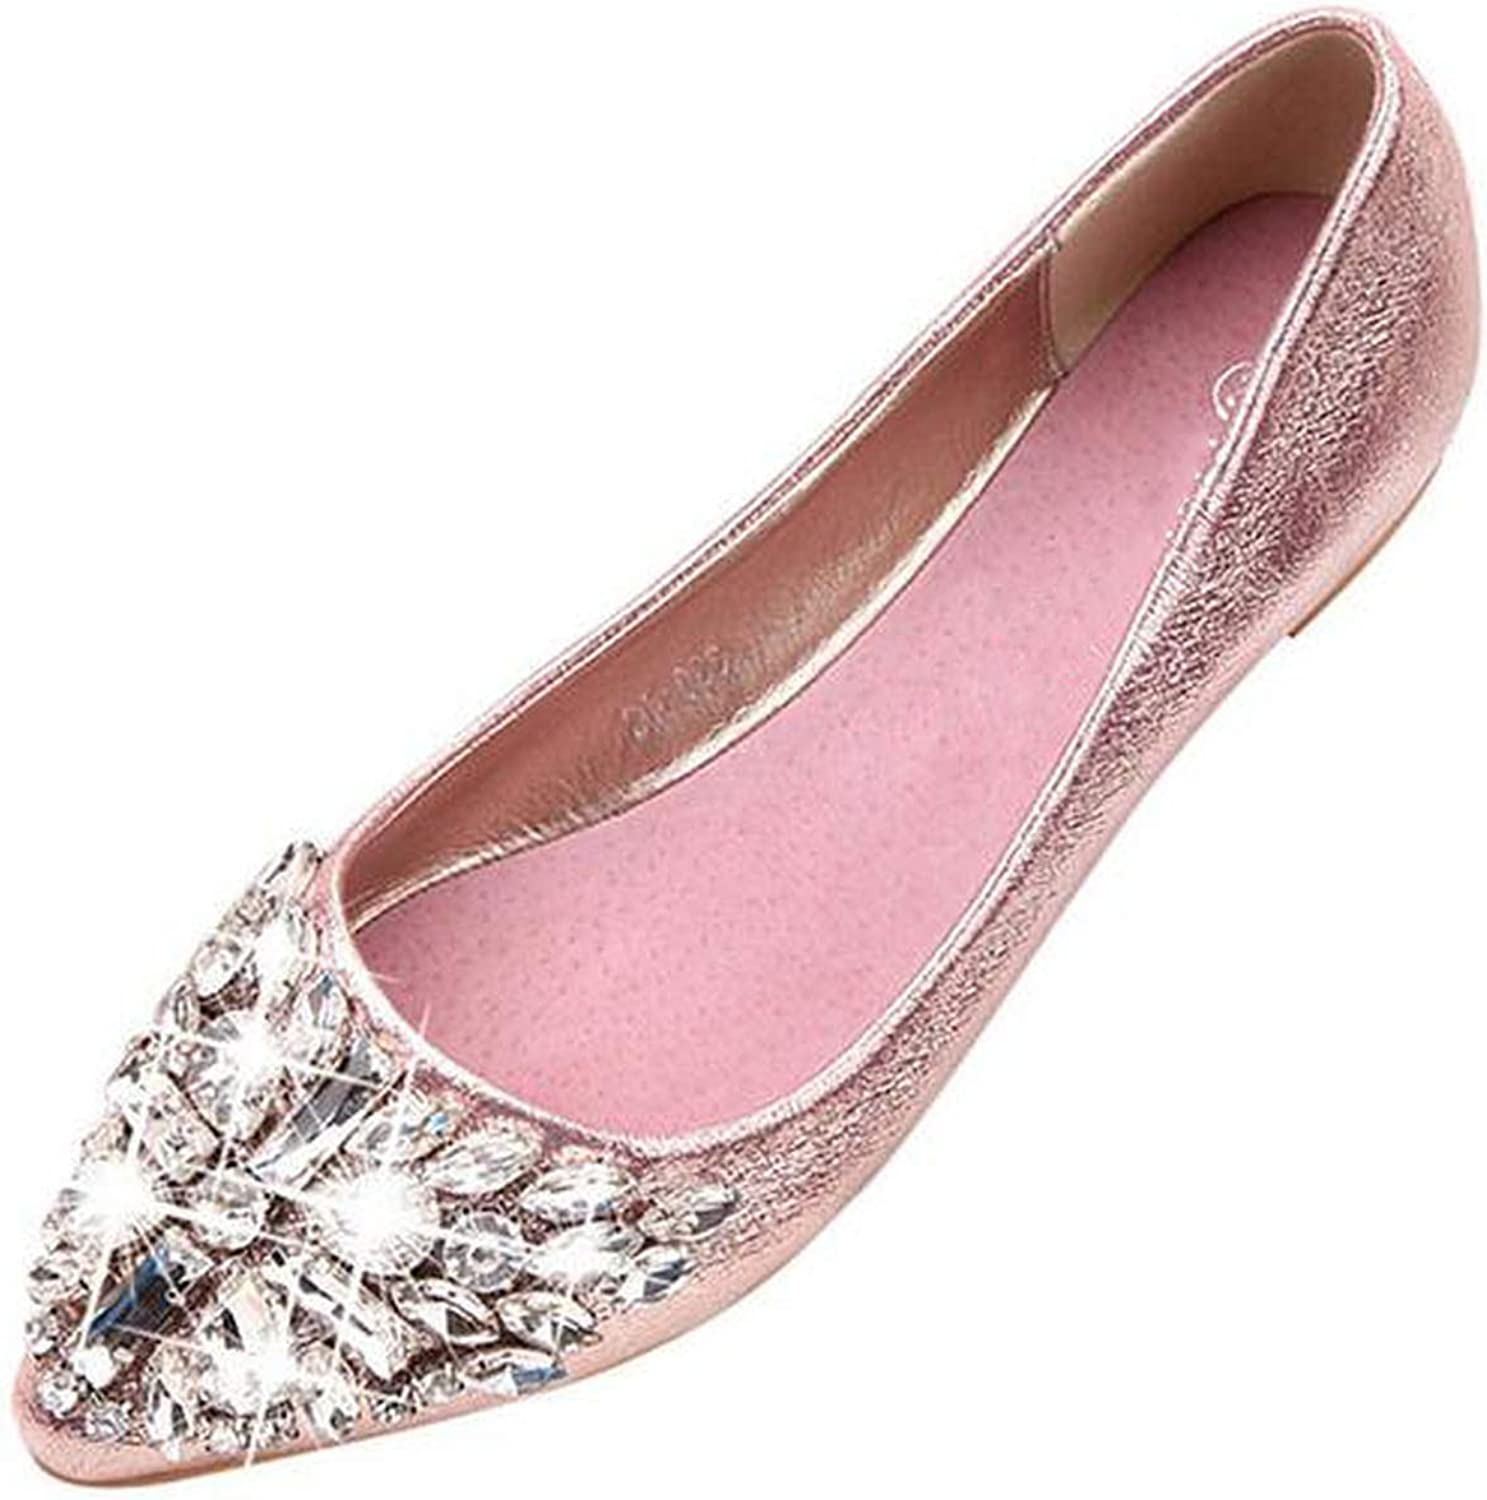 Spring Summer Women Rhinestone Flats shoes Pointed Toe Ladise shoes Casual Low Heel Flat shoes Woman shoes women E523